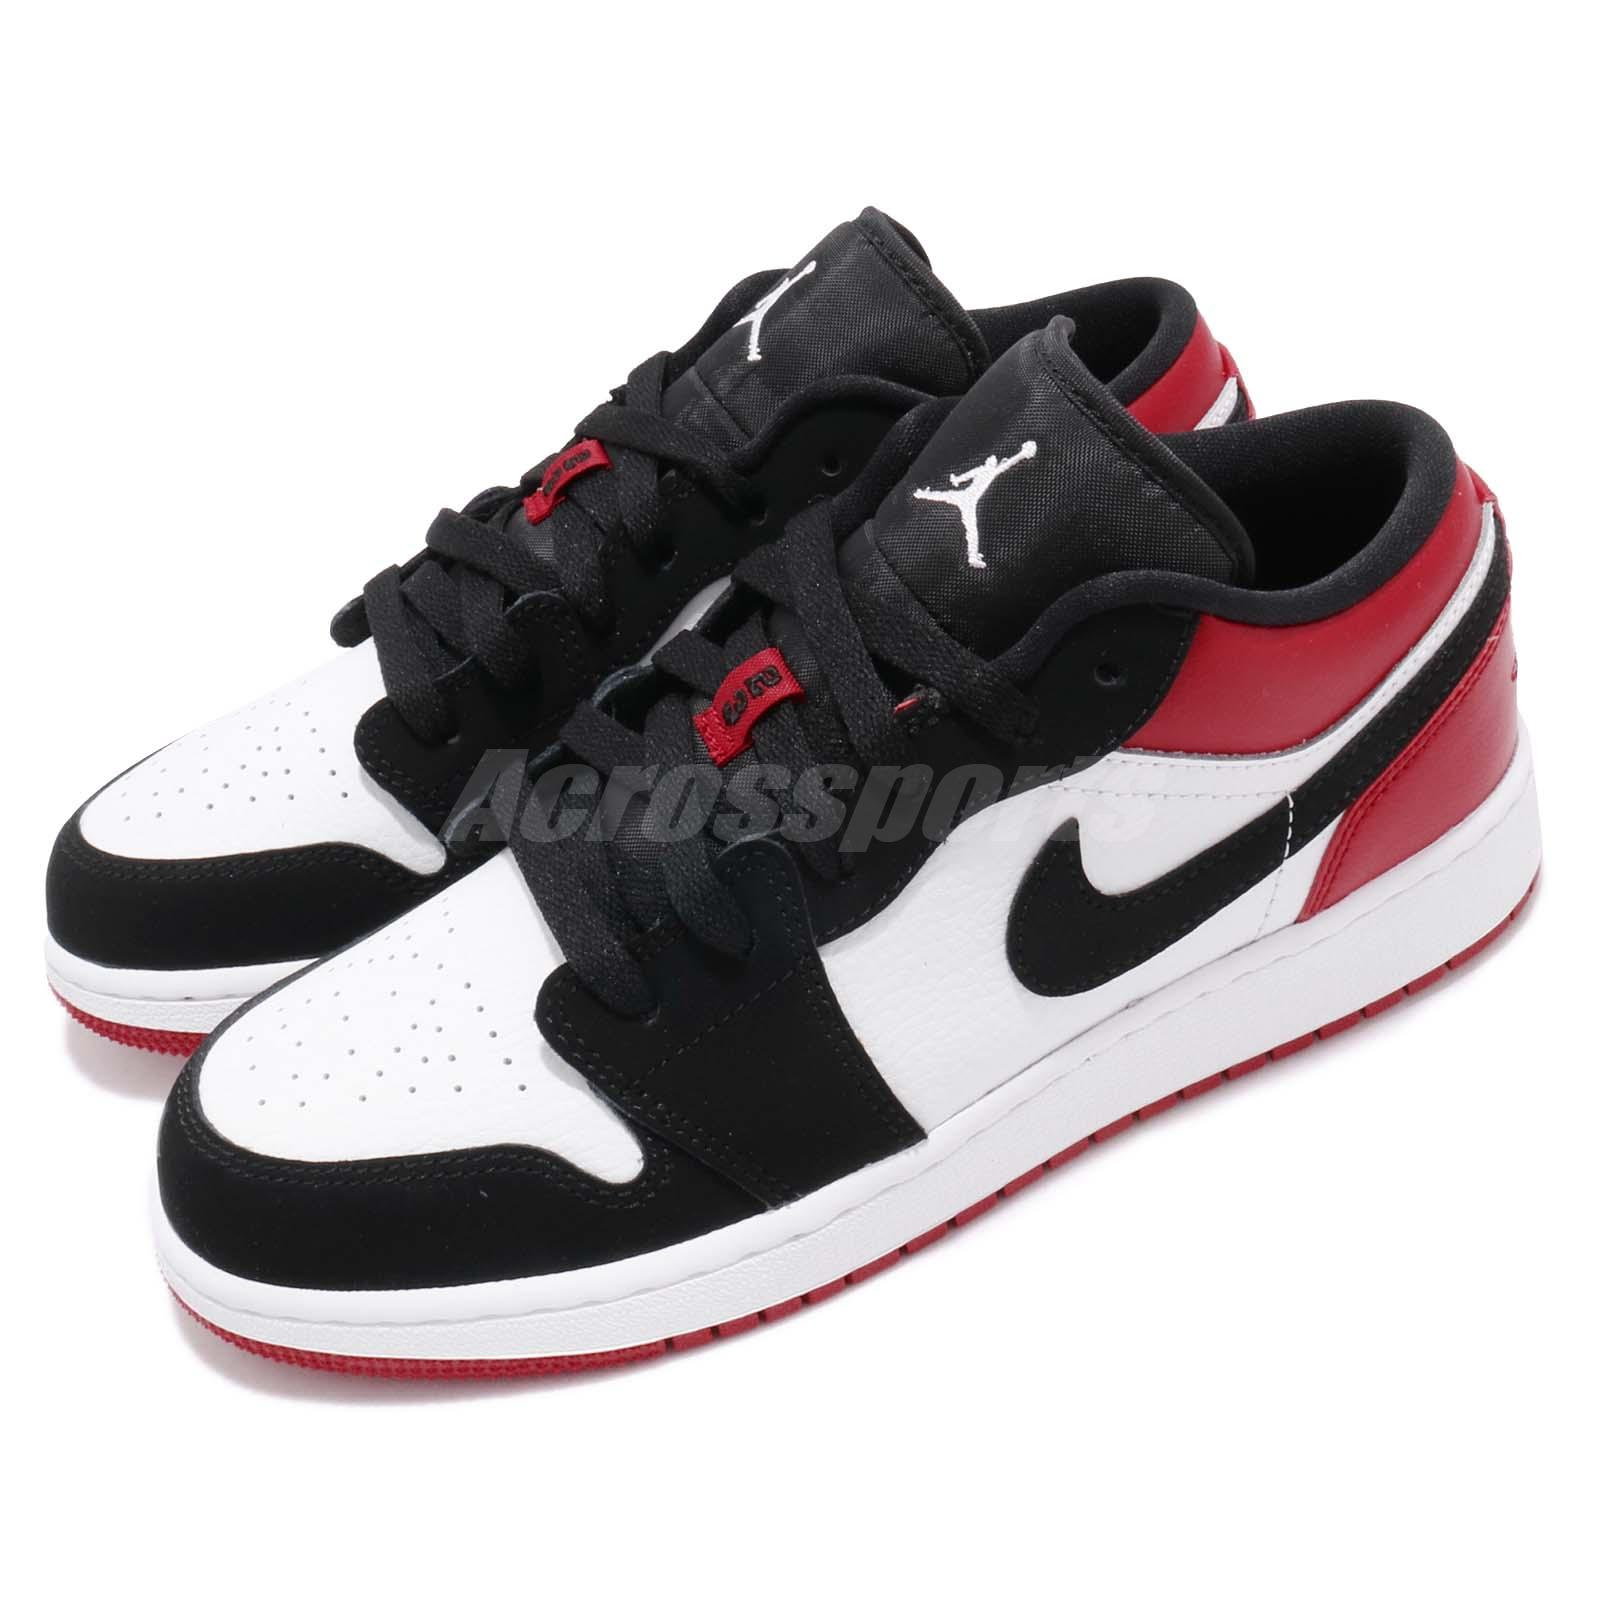 finest selection 801d4 20f72 Details about Nike Air Jordan 1 Low GS I AJ1 Black Toe Kid Youth Women Shoe  Sneaker 553560-116